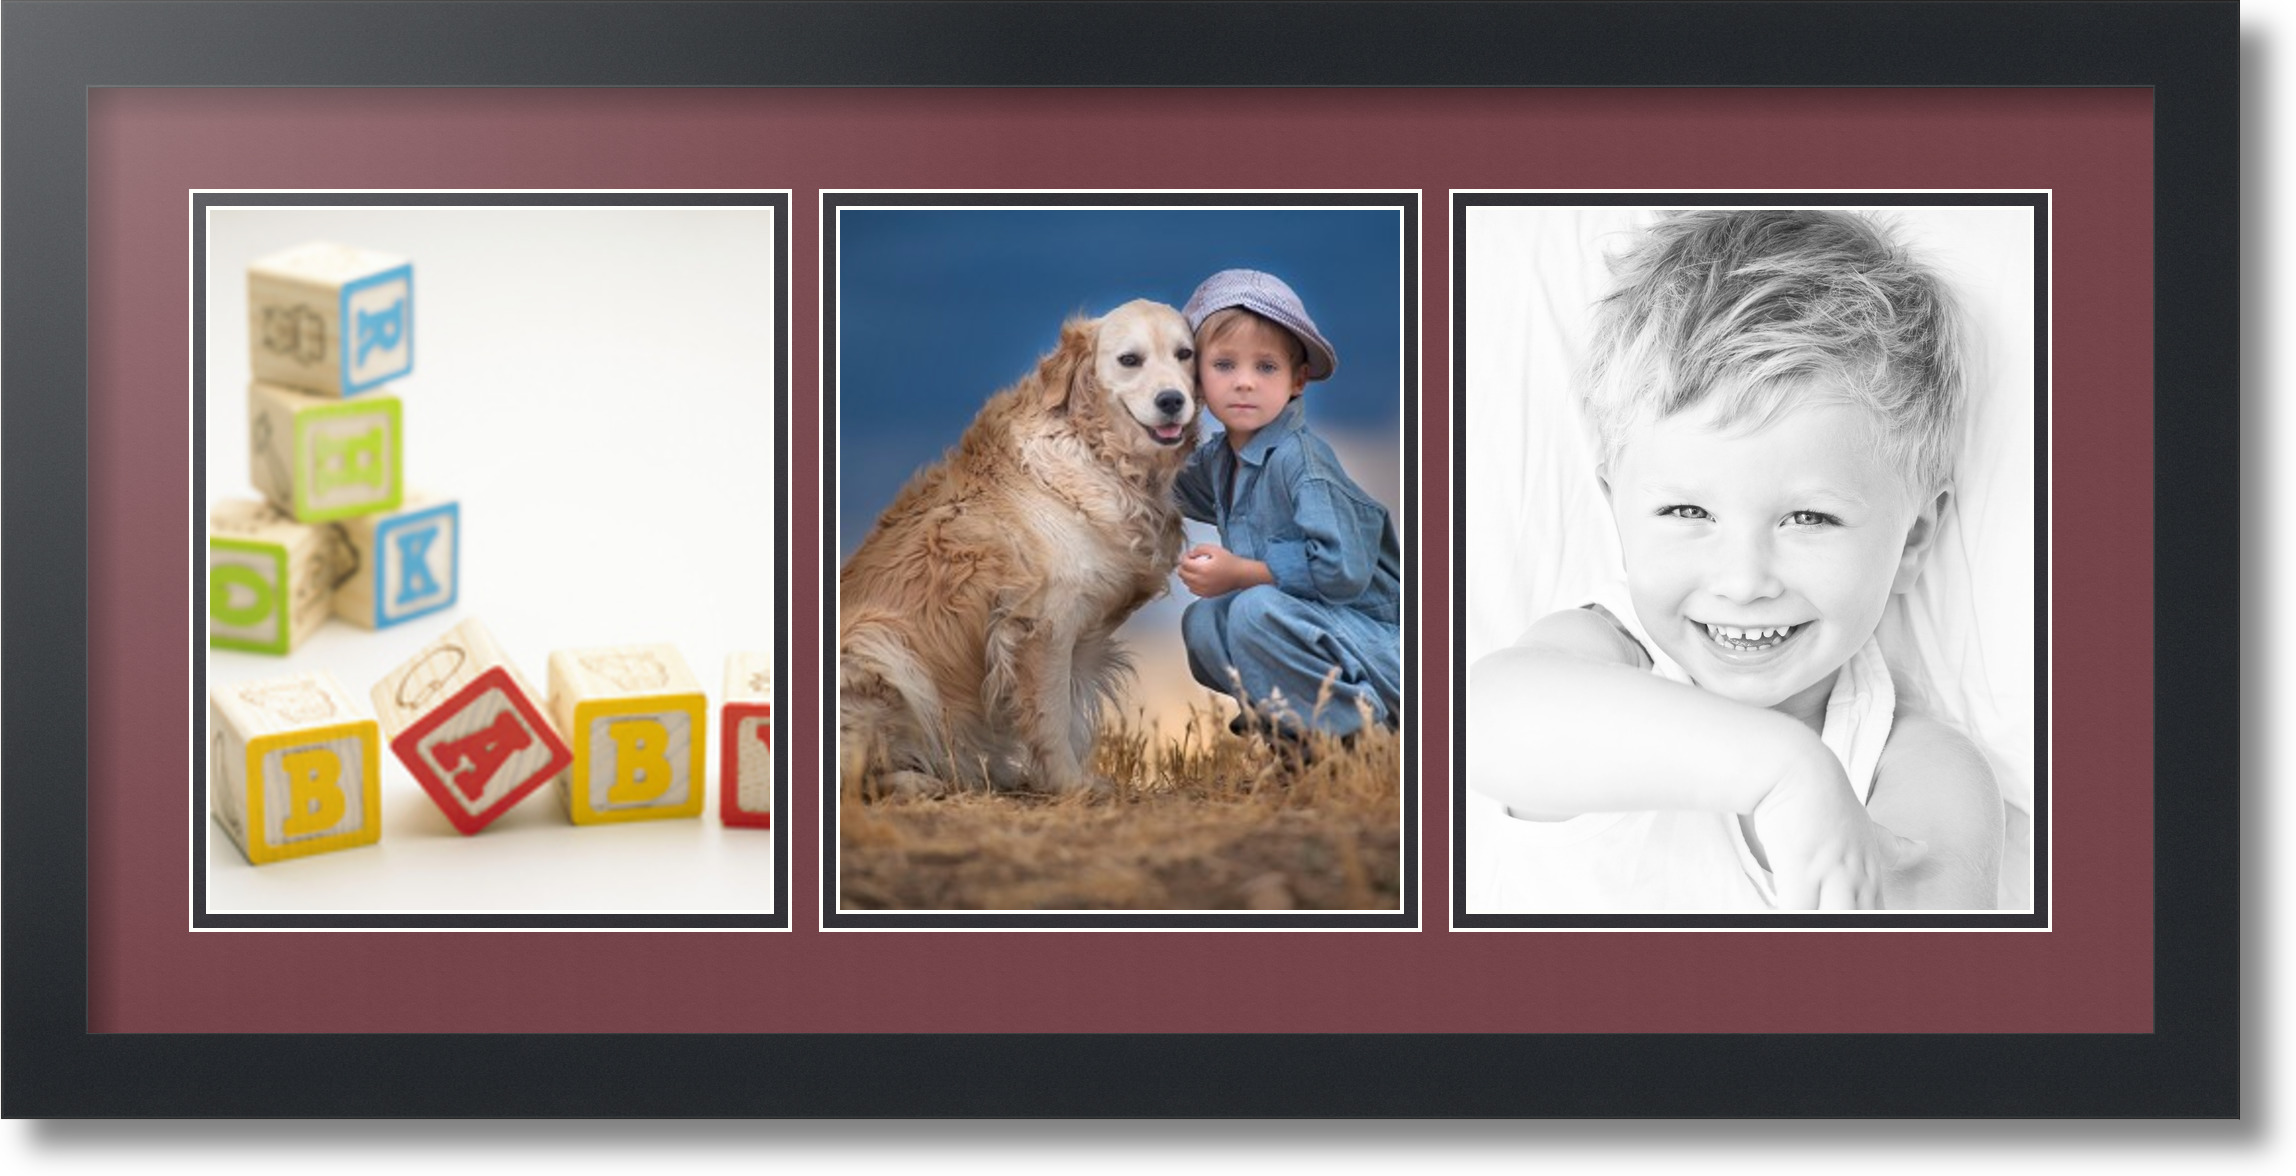 11x14 Photo Mat With 8x10 Opening.Photo Mat 11x14 Multi Opening For ...